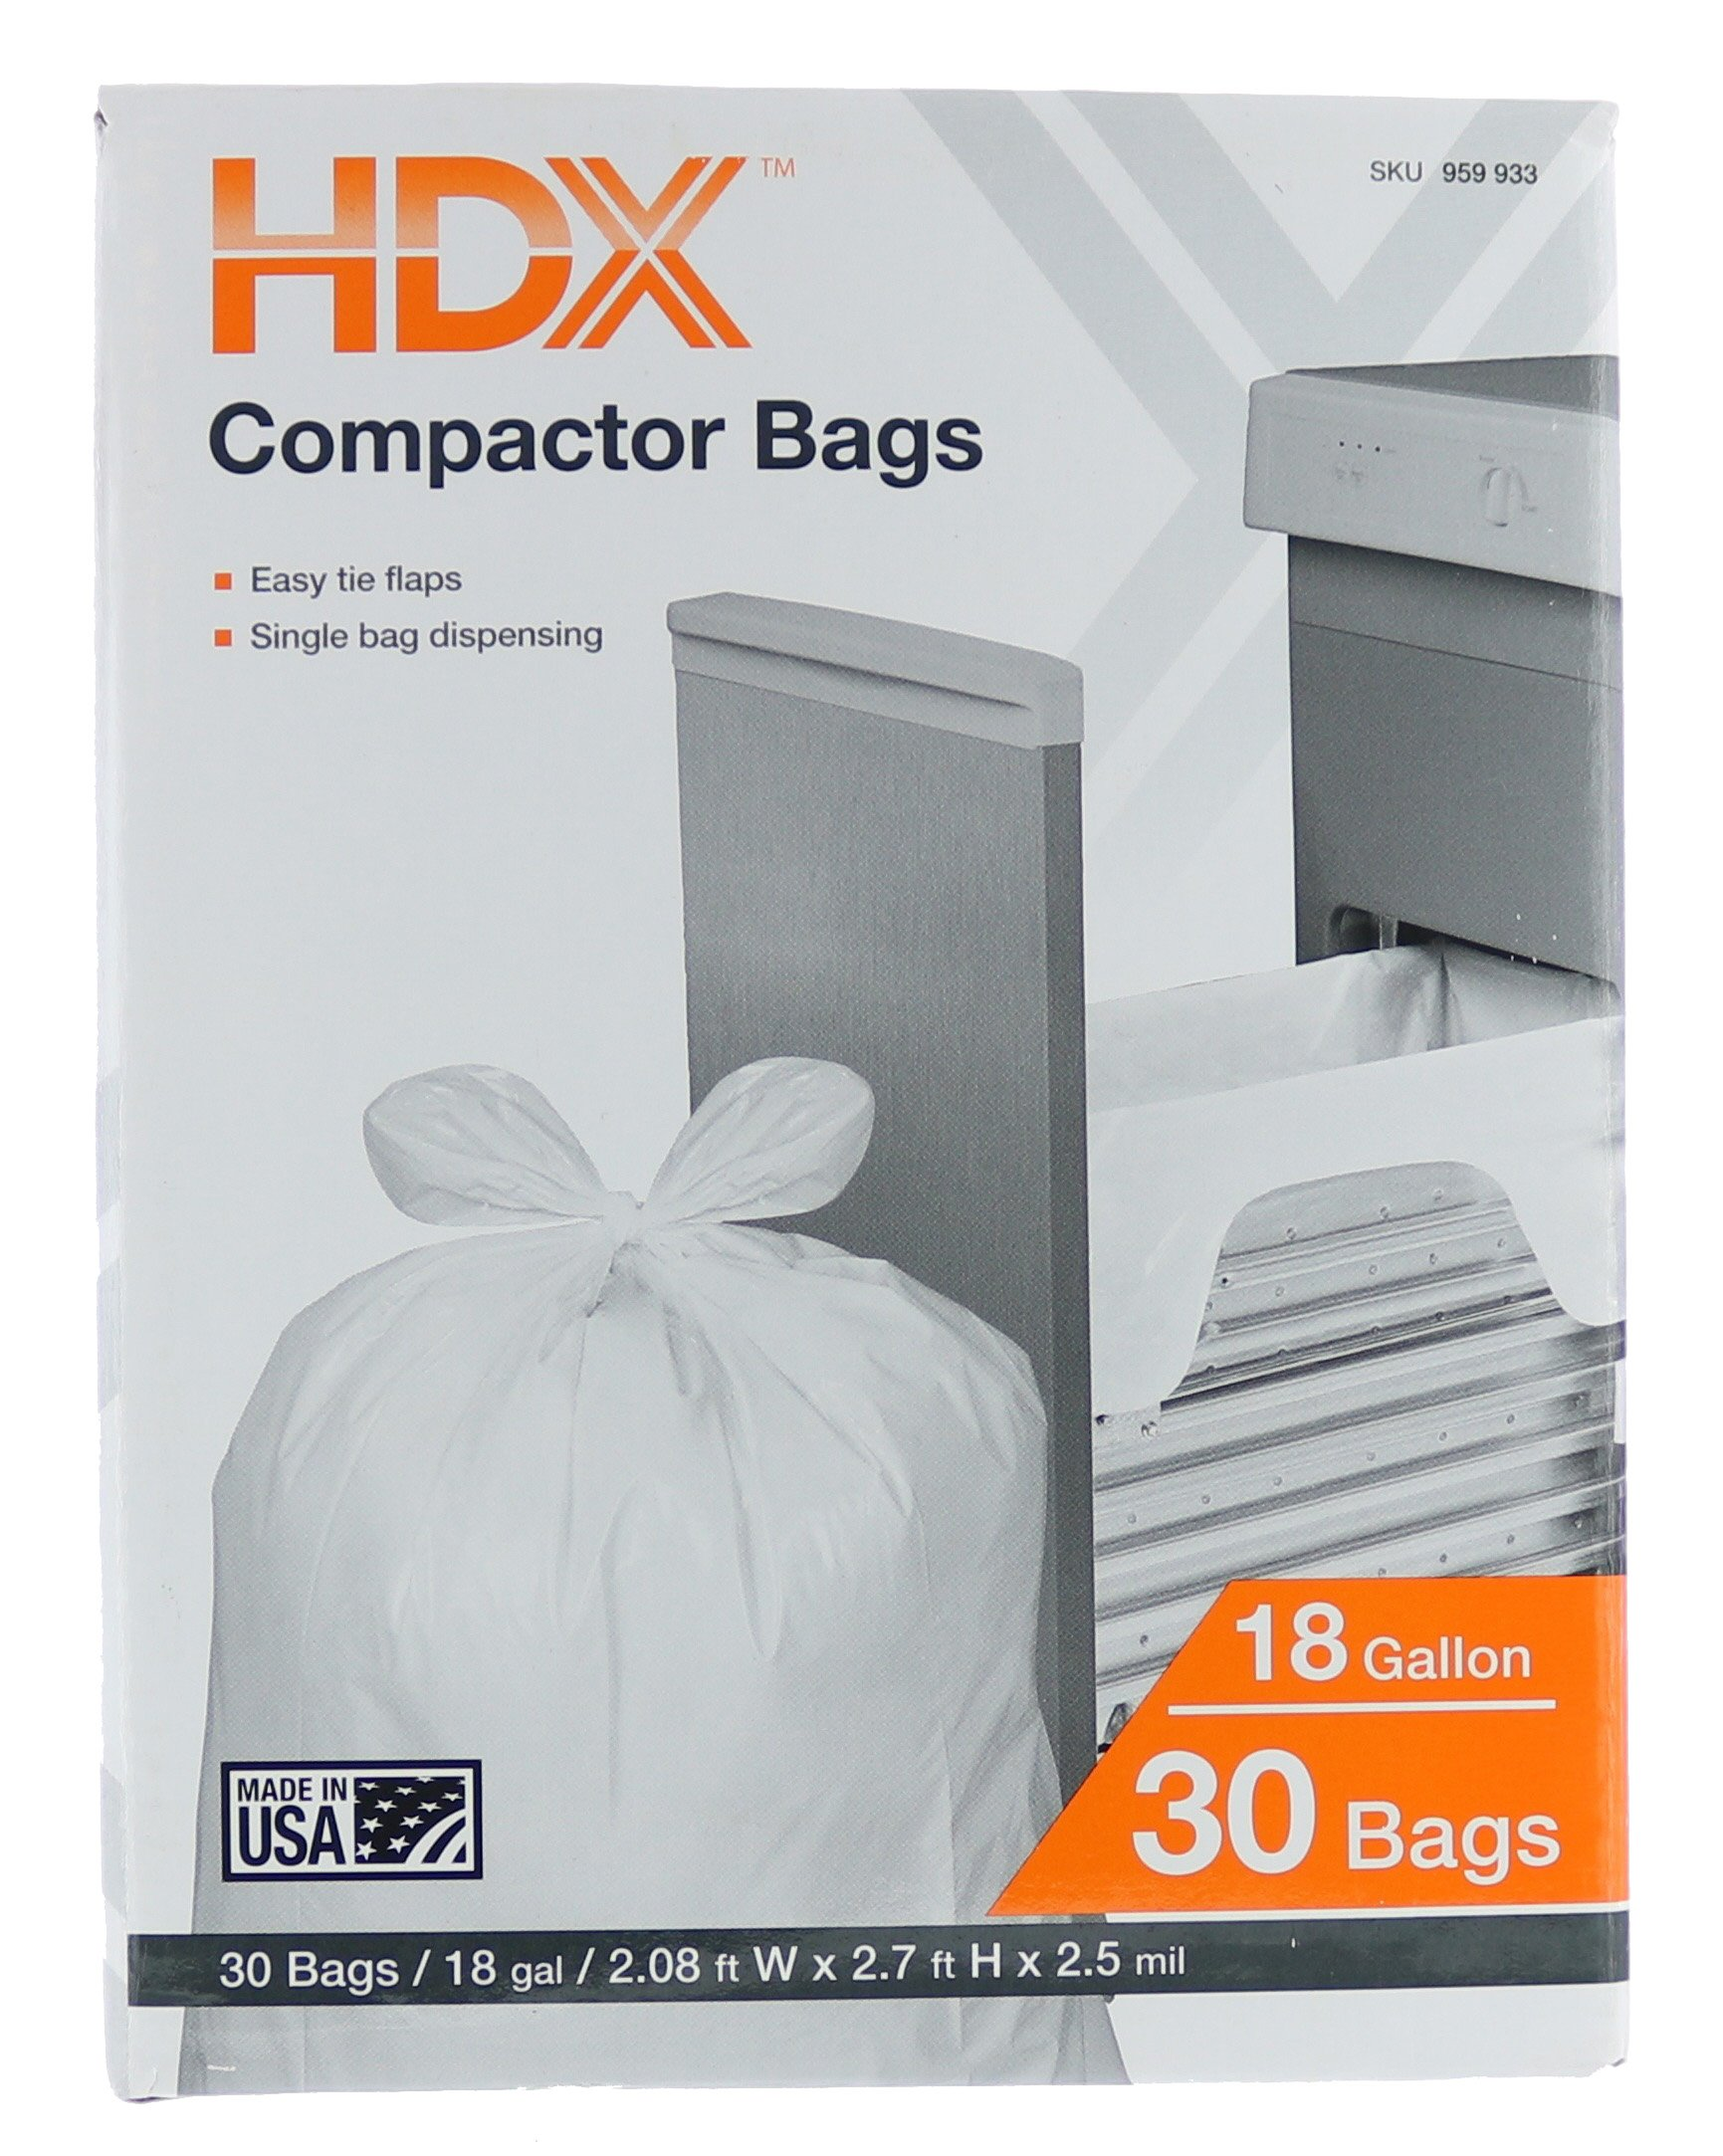 HDX 959933 18 Gallon 2.5 Mil Trash Compactor Bags w/ Tie Flaps (30-Count) (Made in USA) by HDX